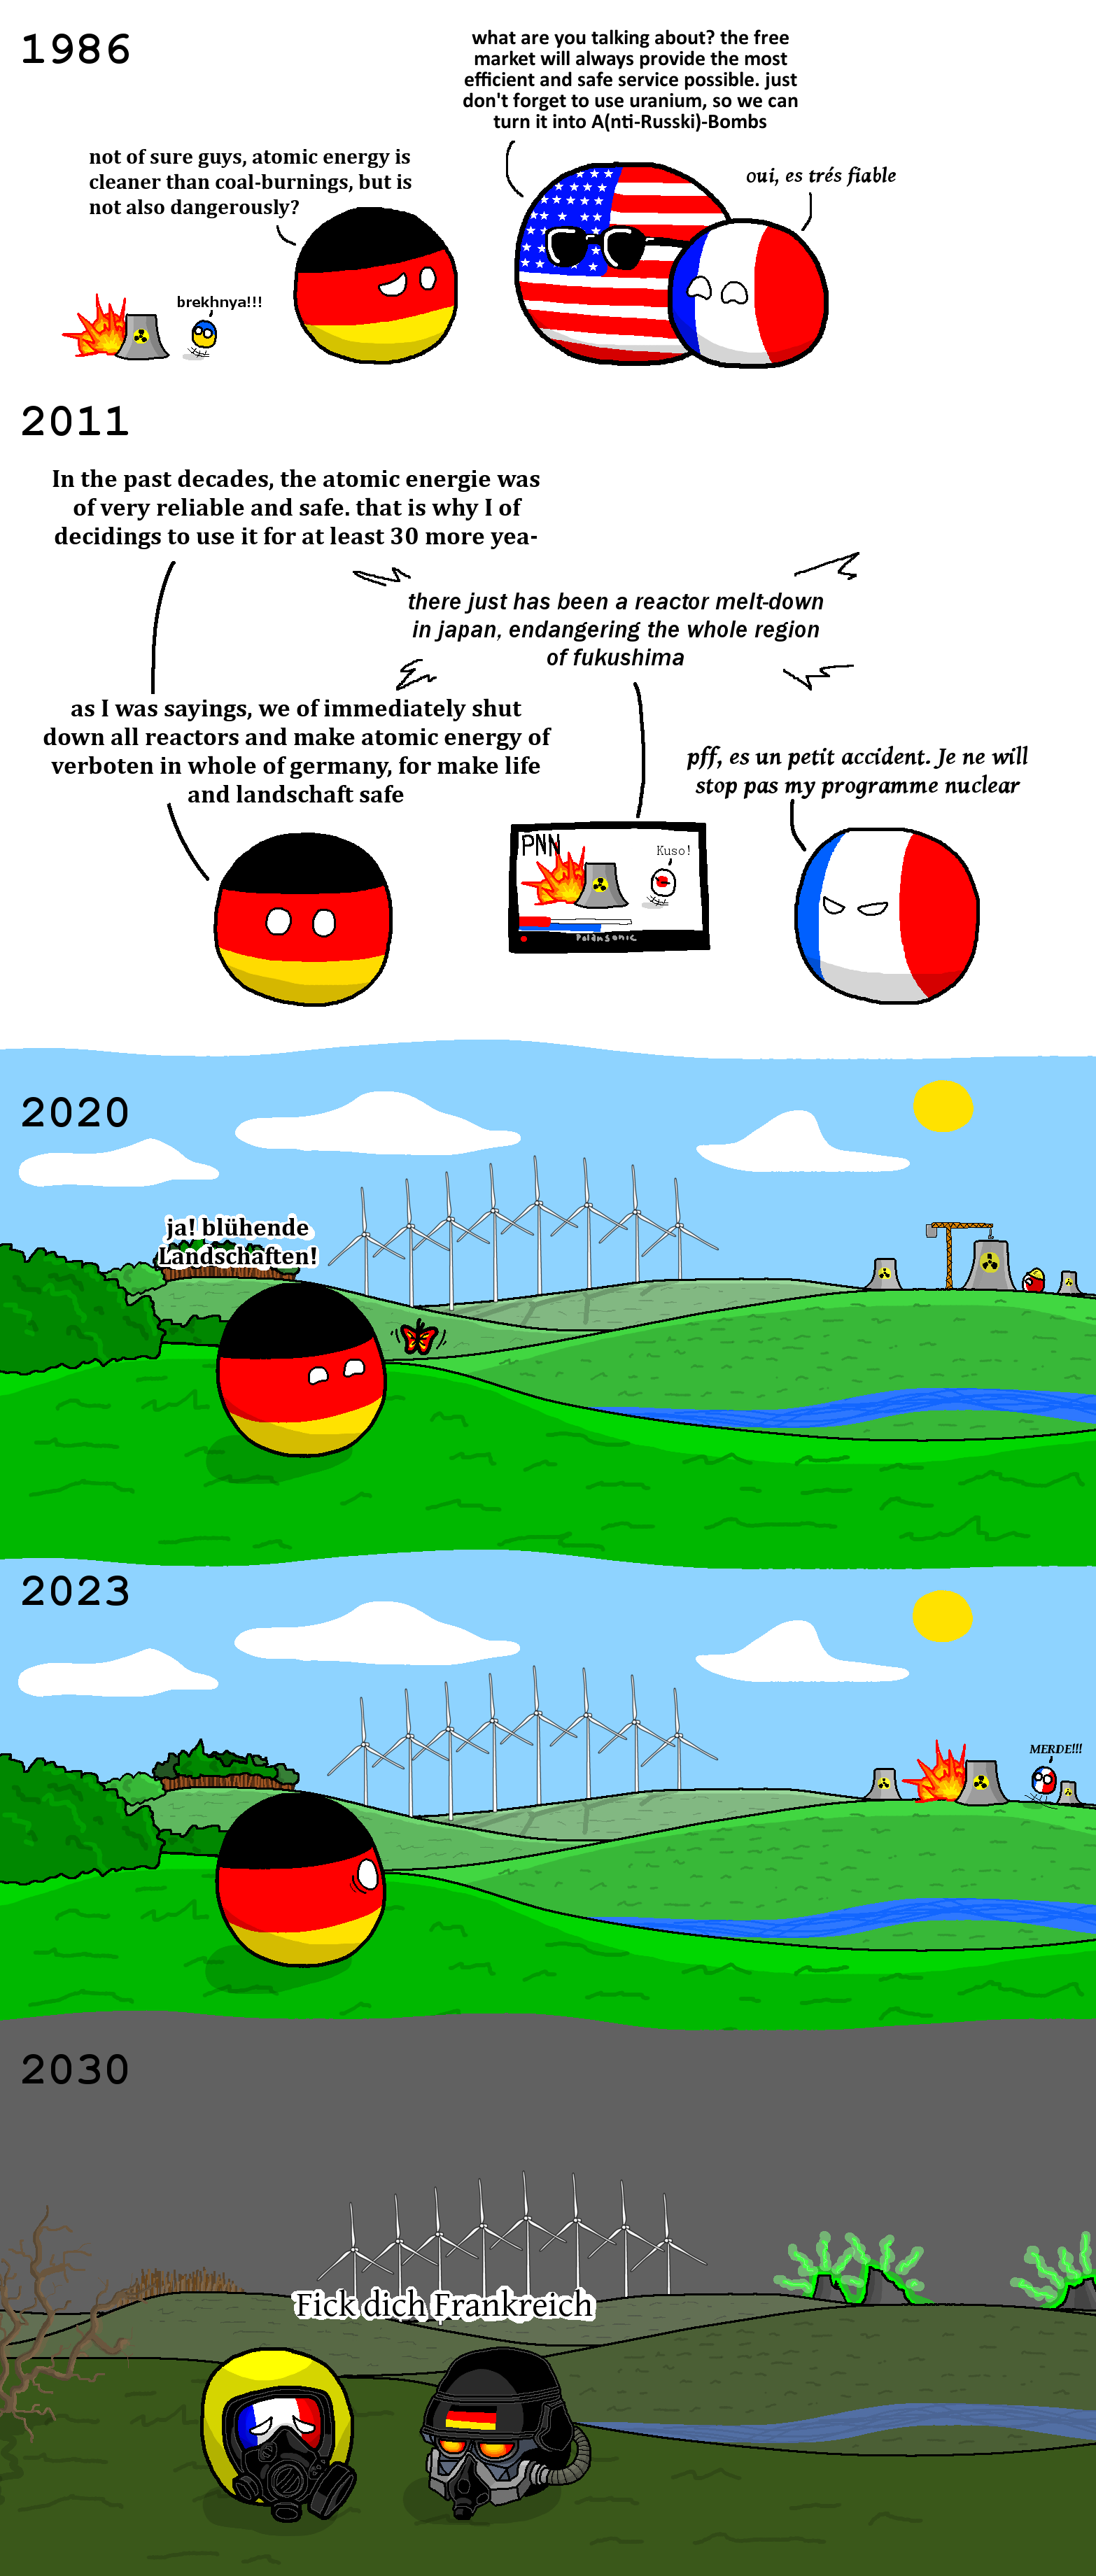 European Fallout. r/polandball. 1 9 8 6 what are you talking about? the free market will always provide the most efficient and safe service possible. just don'